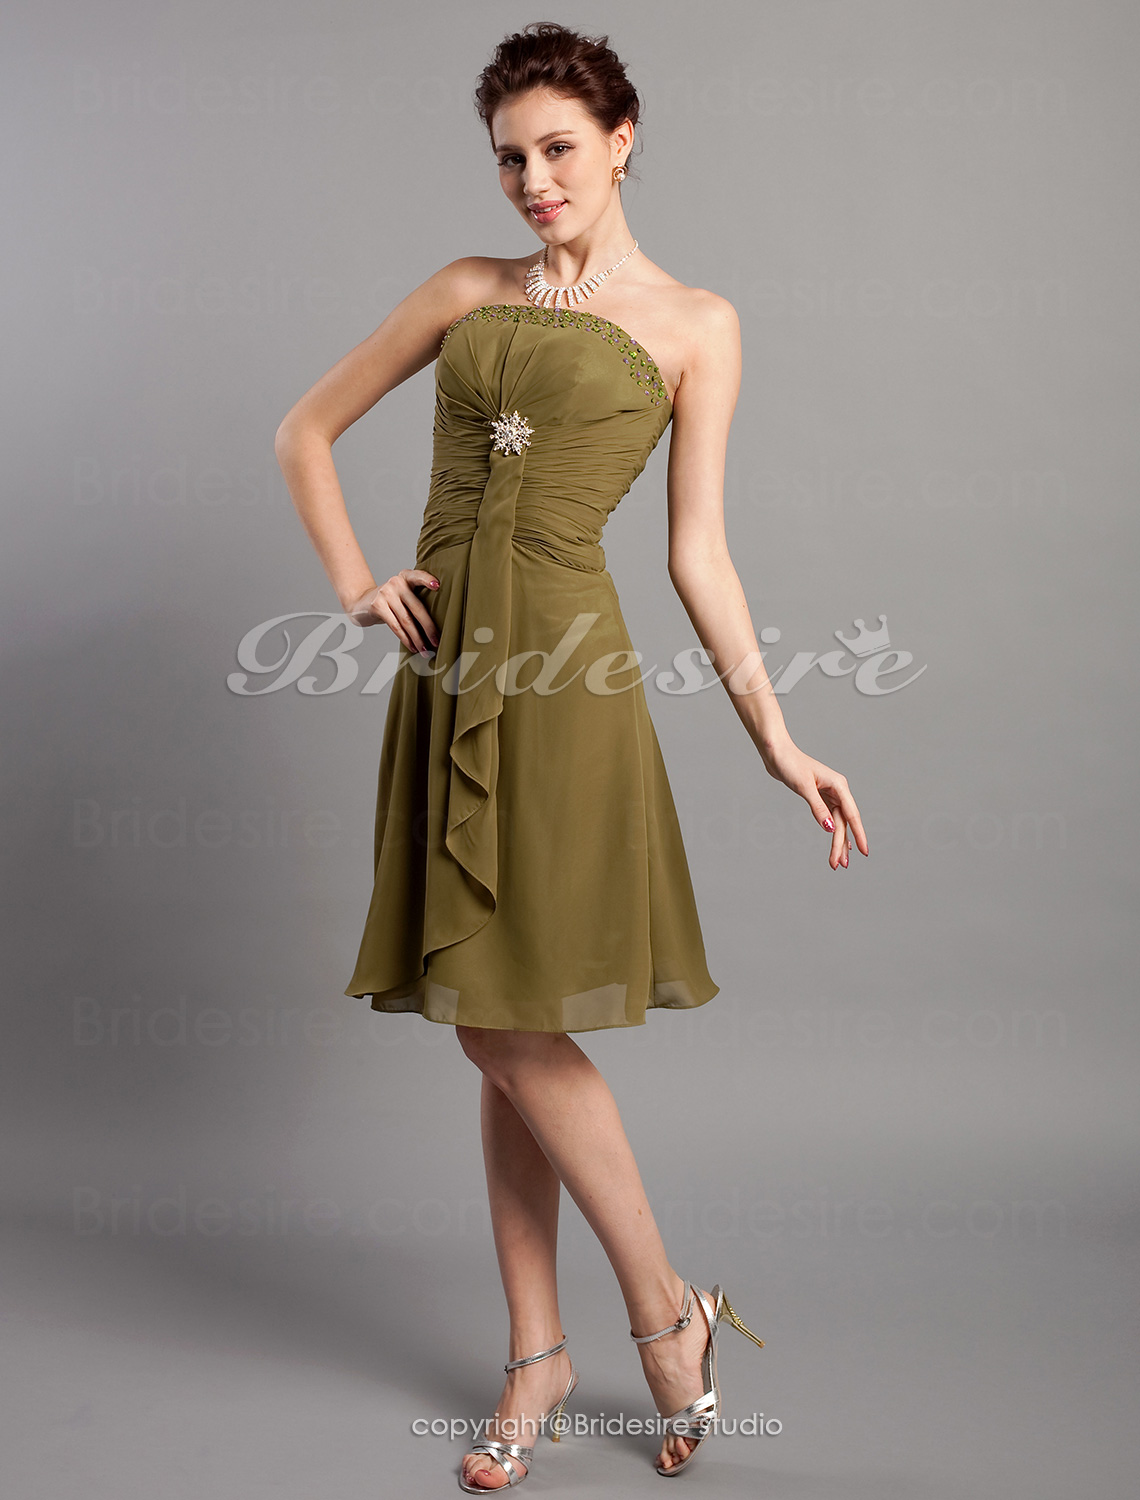 A-line Chiffon Knee-length Beaded Strapless Cocktail Dress